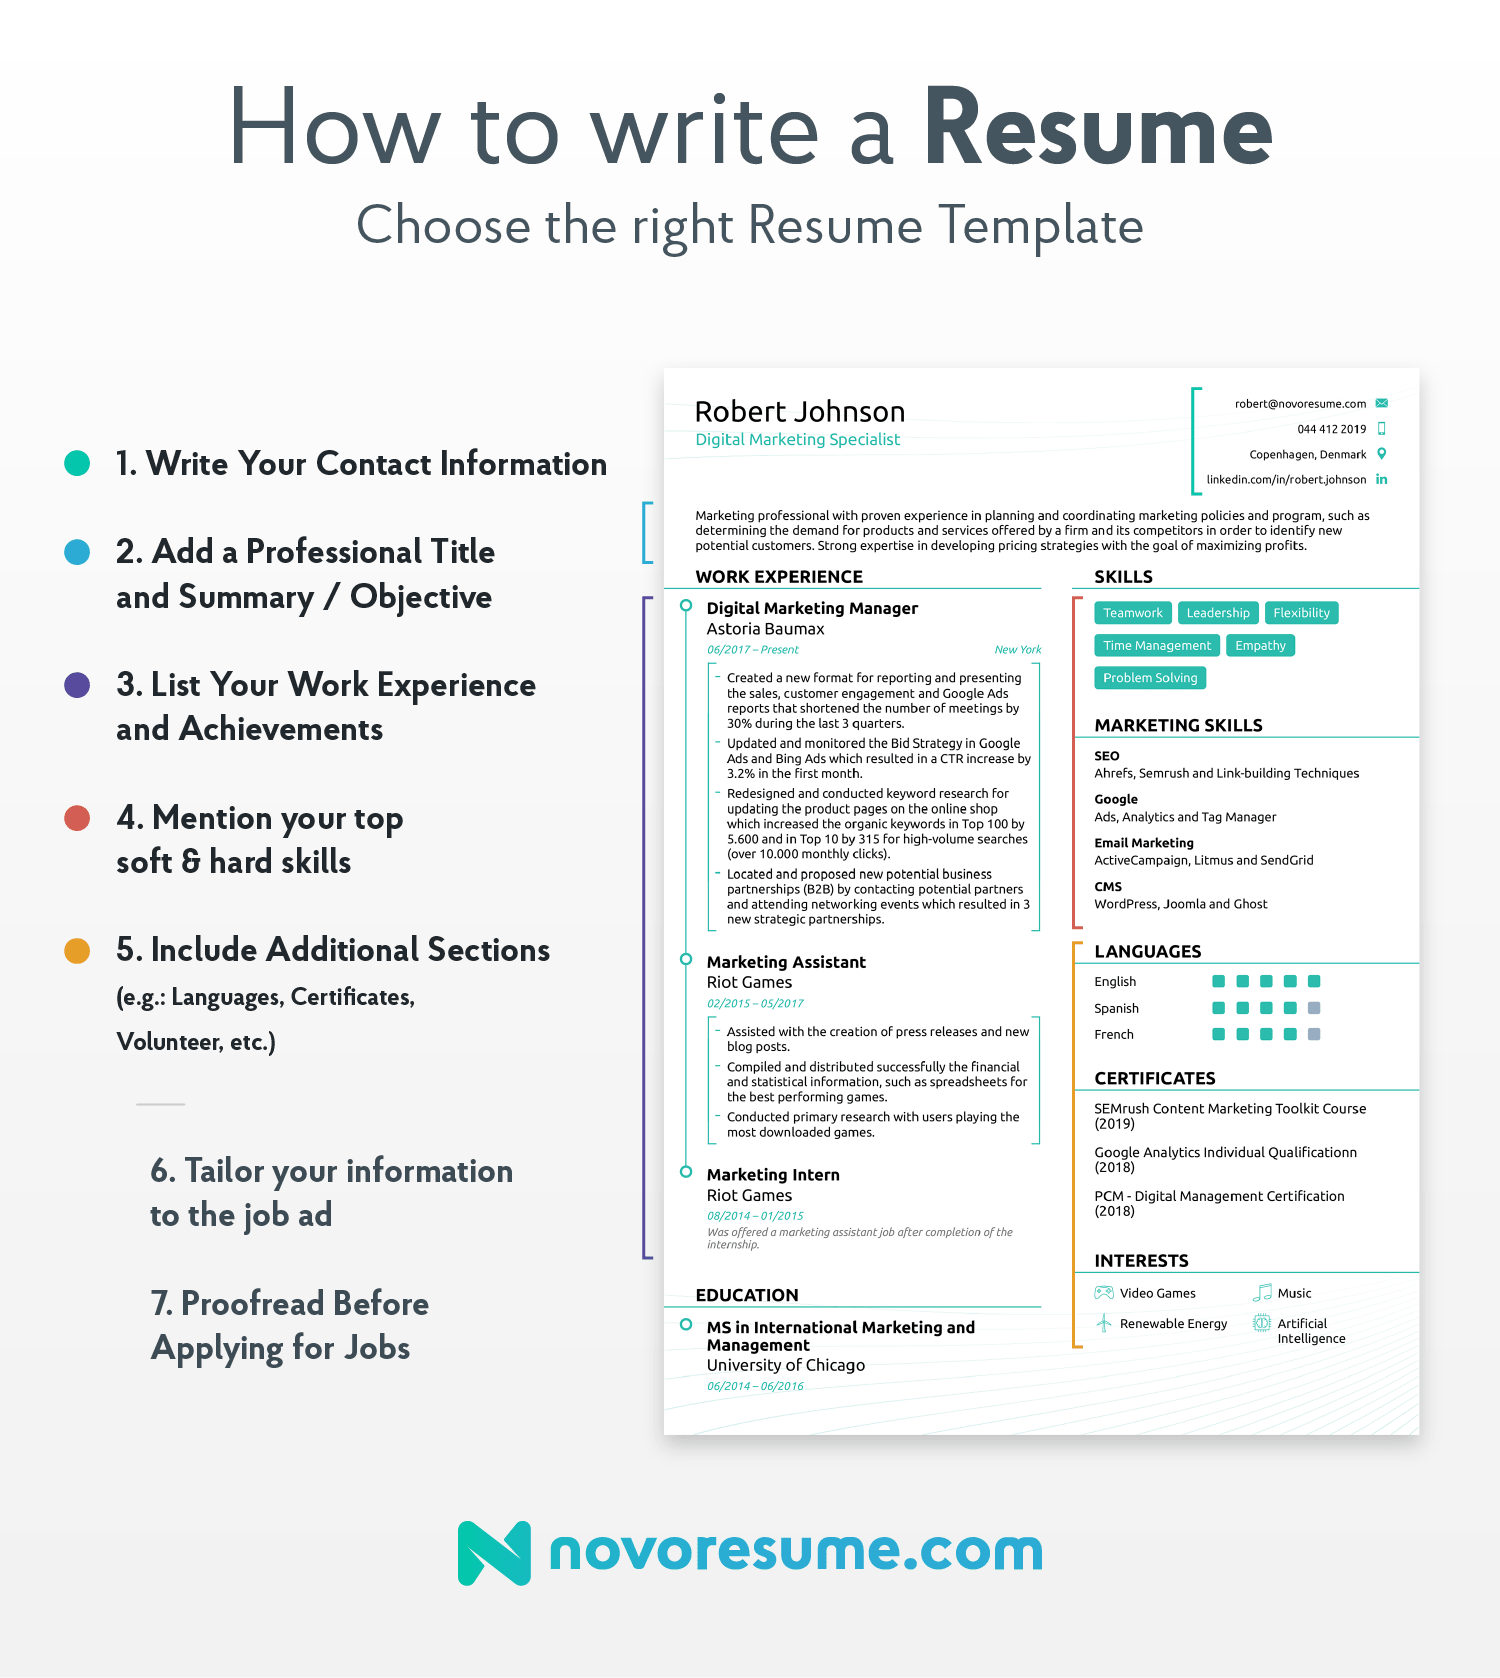 How to write a resume in 2018 guide for beginner how to write a resume in 2018 extensive resume guide examples altavistaventures Gallery